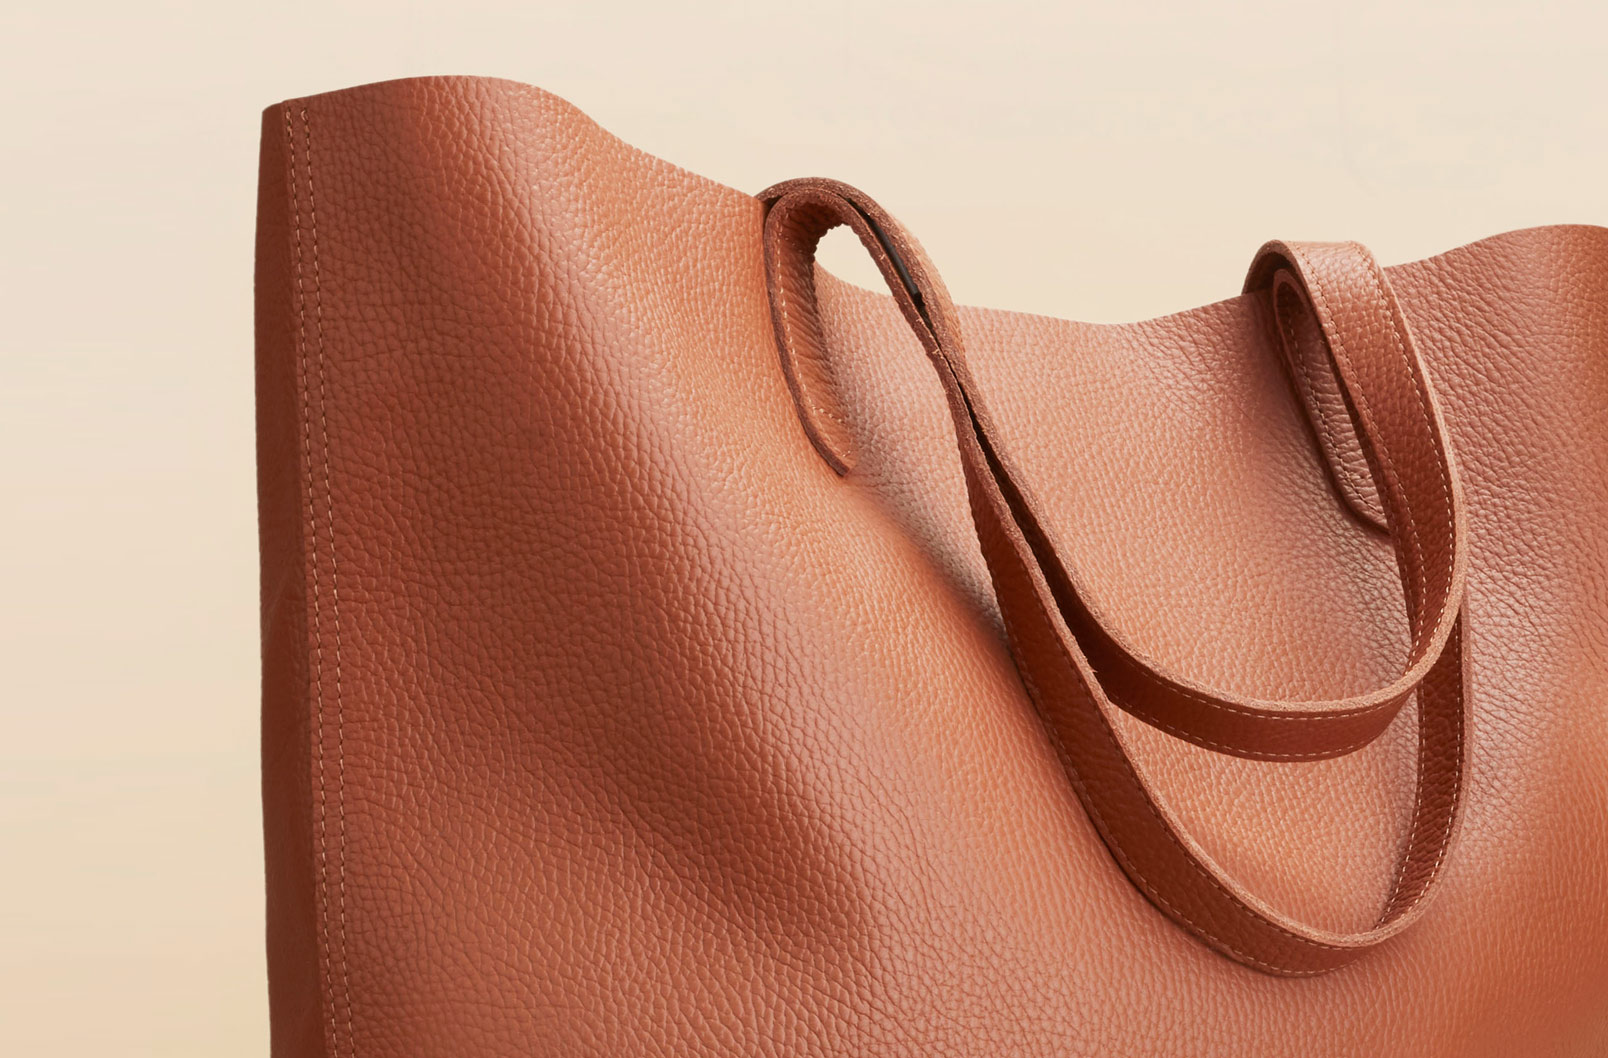 Cuyana Classic Leather Tote in Caramel showing pebbled leather detail